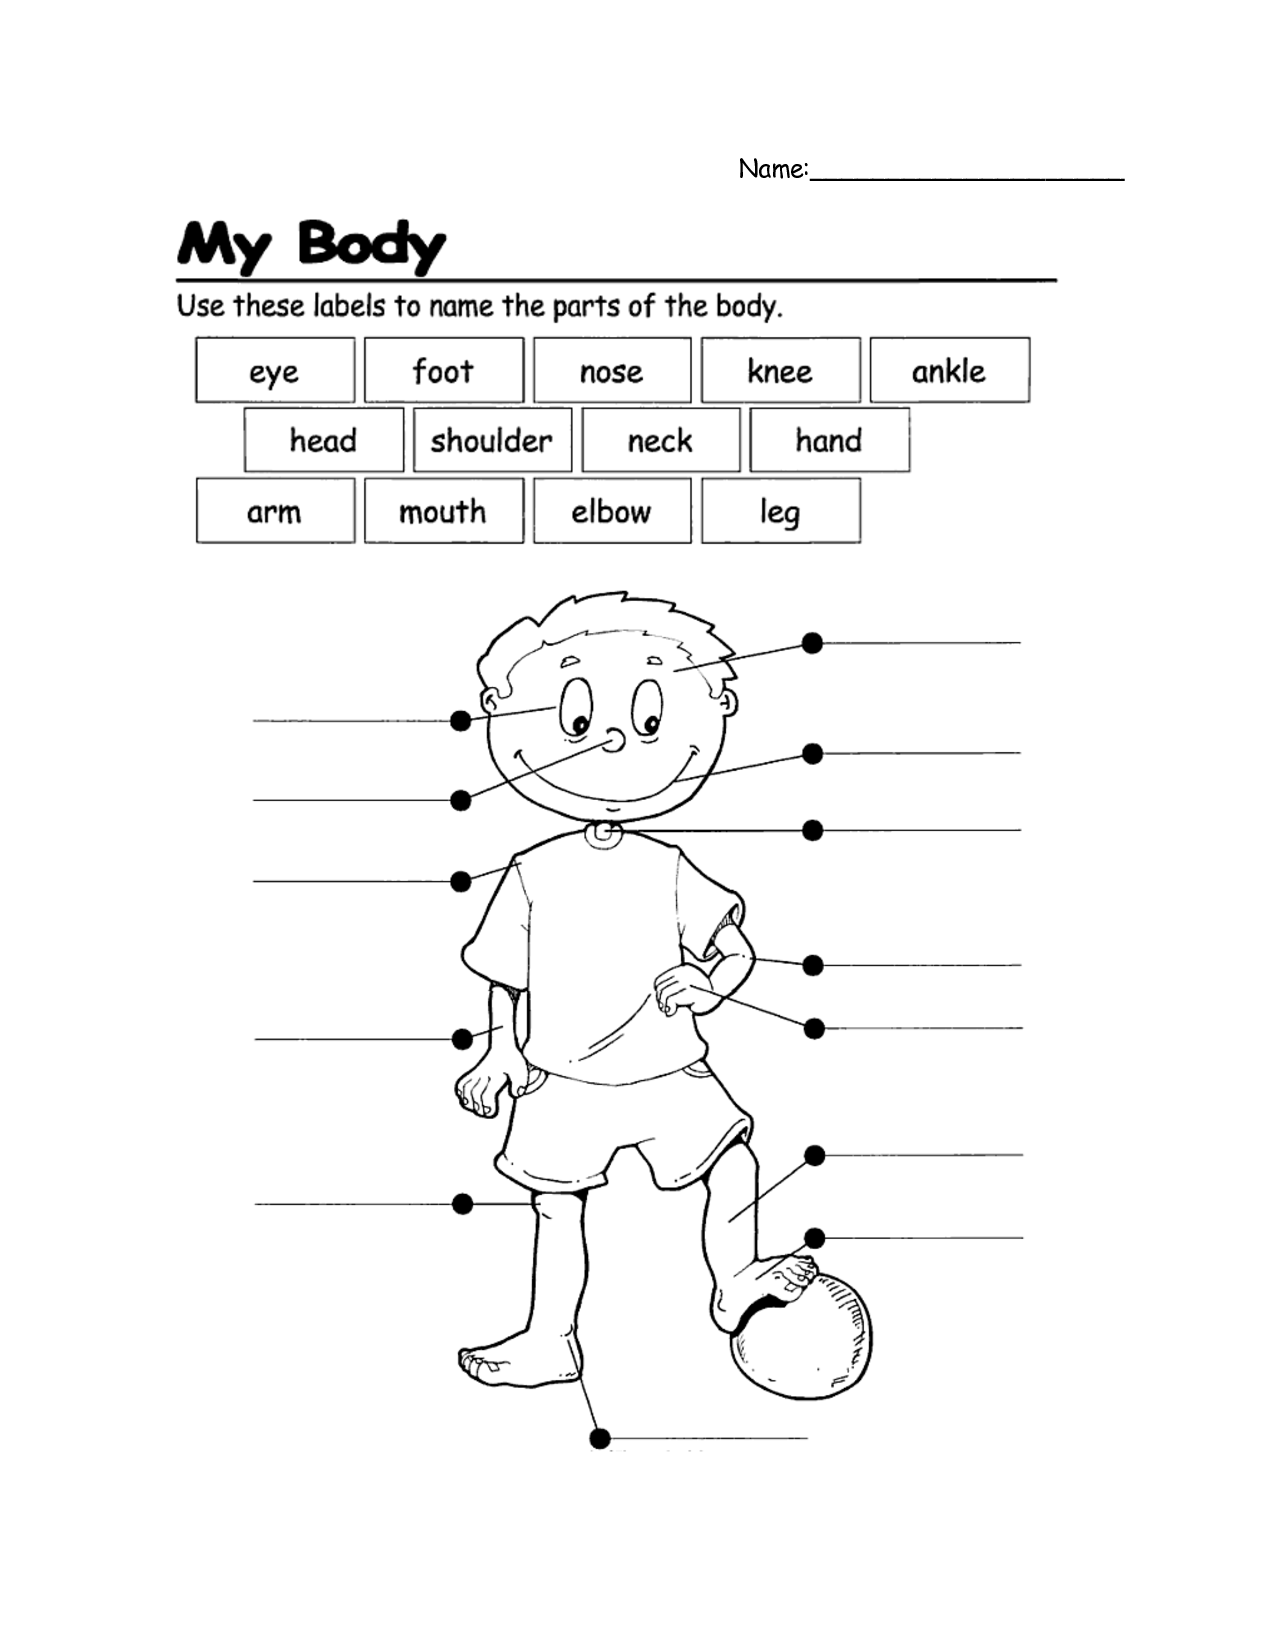 Collection Of My Body Parts Worksheet For Kindergarten